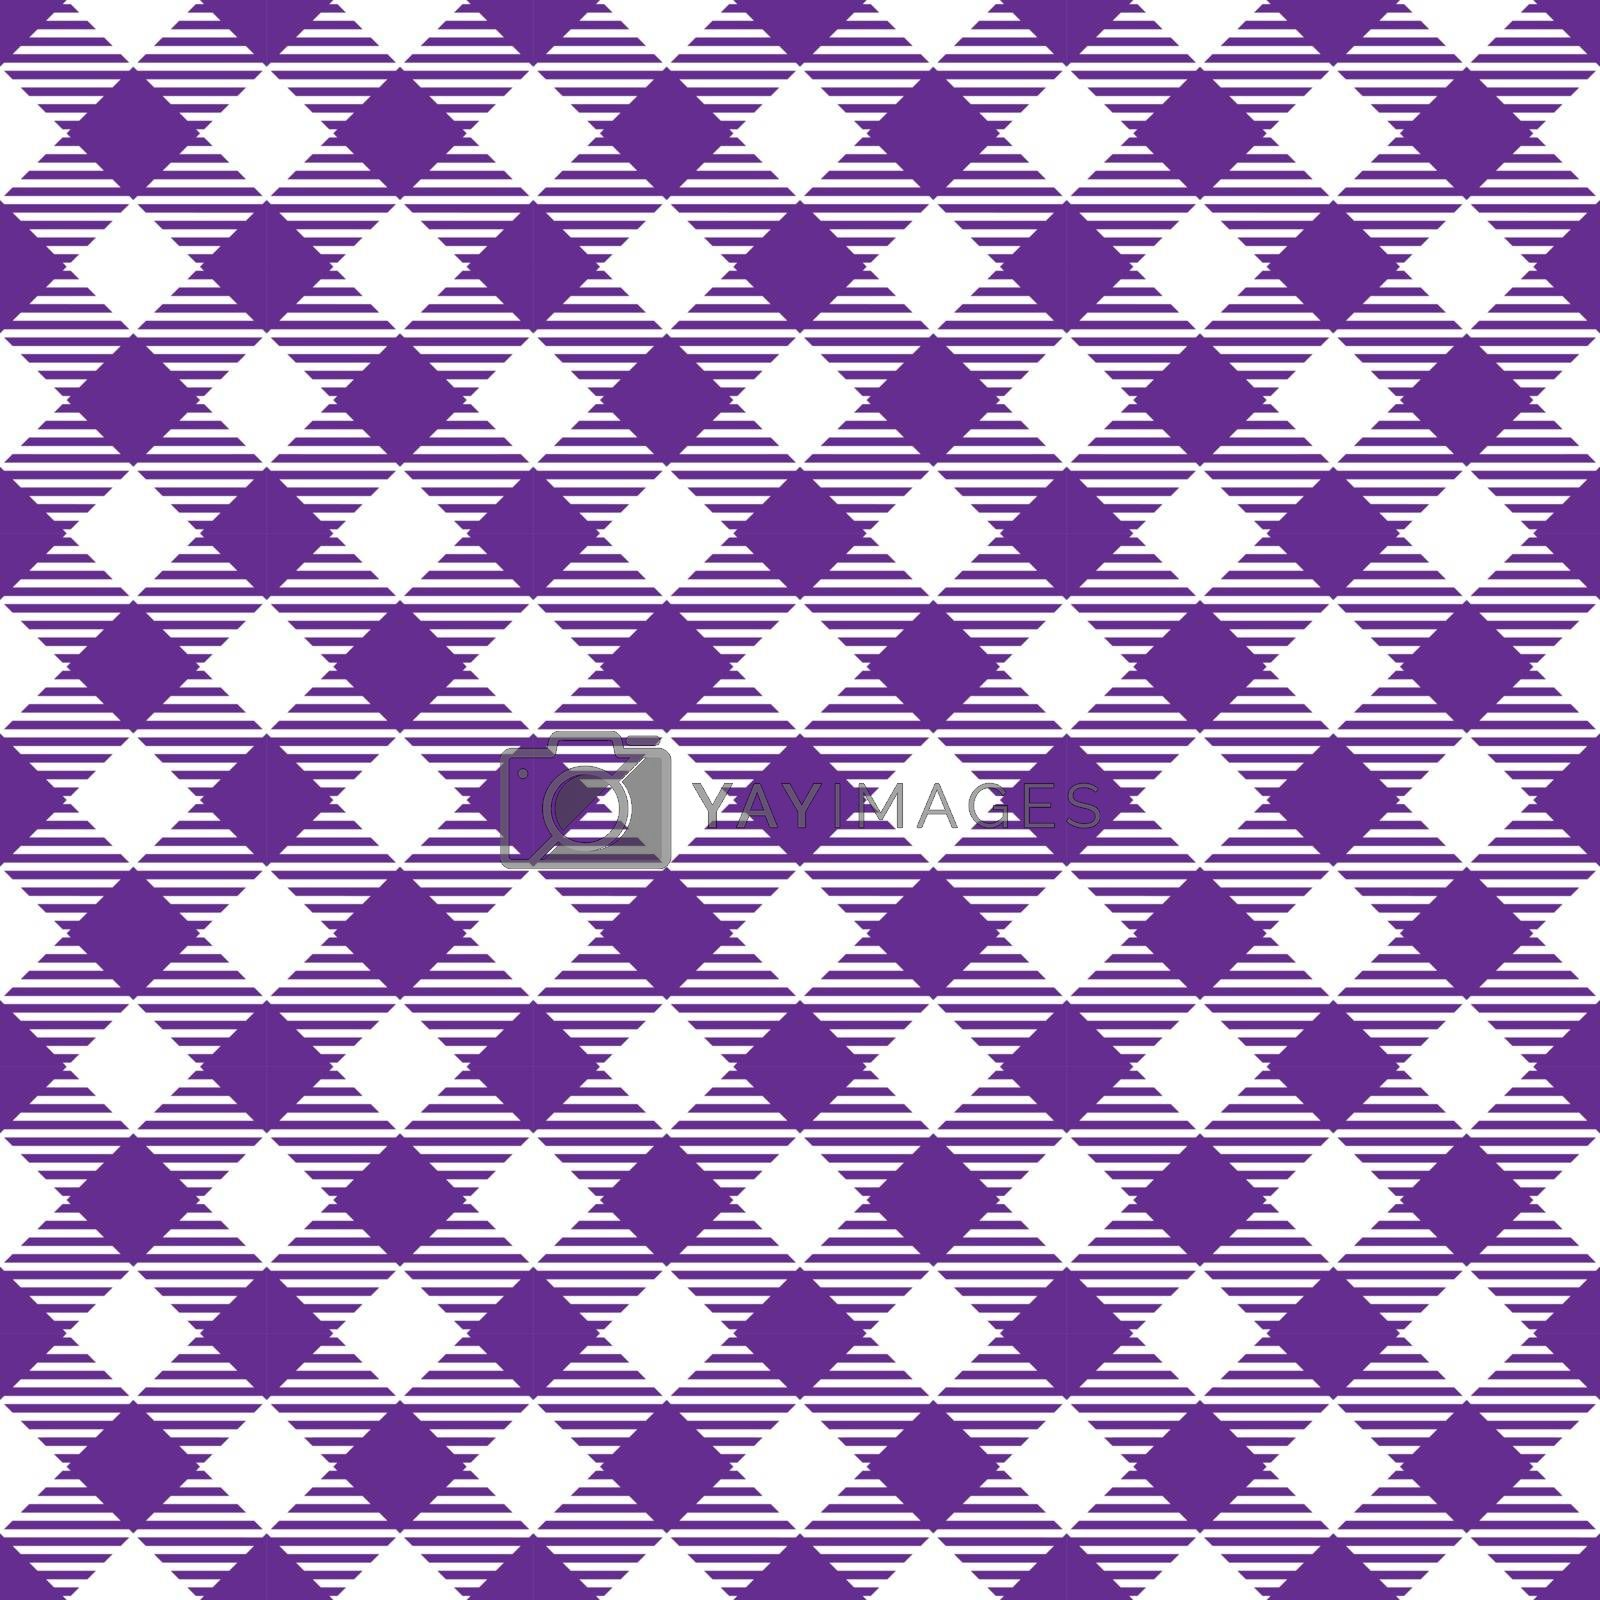 Seamless Viole White Traditional Gingham Pattern Fabric Texture for Design